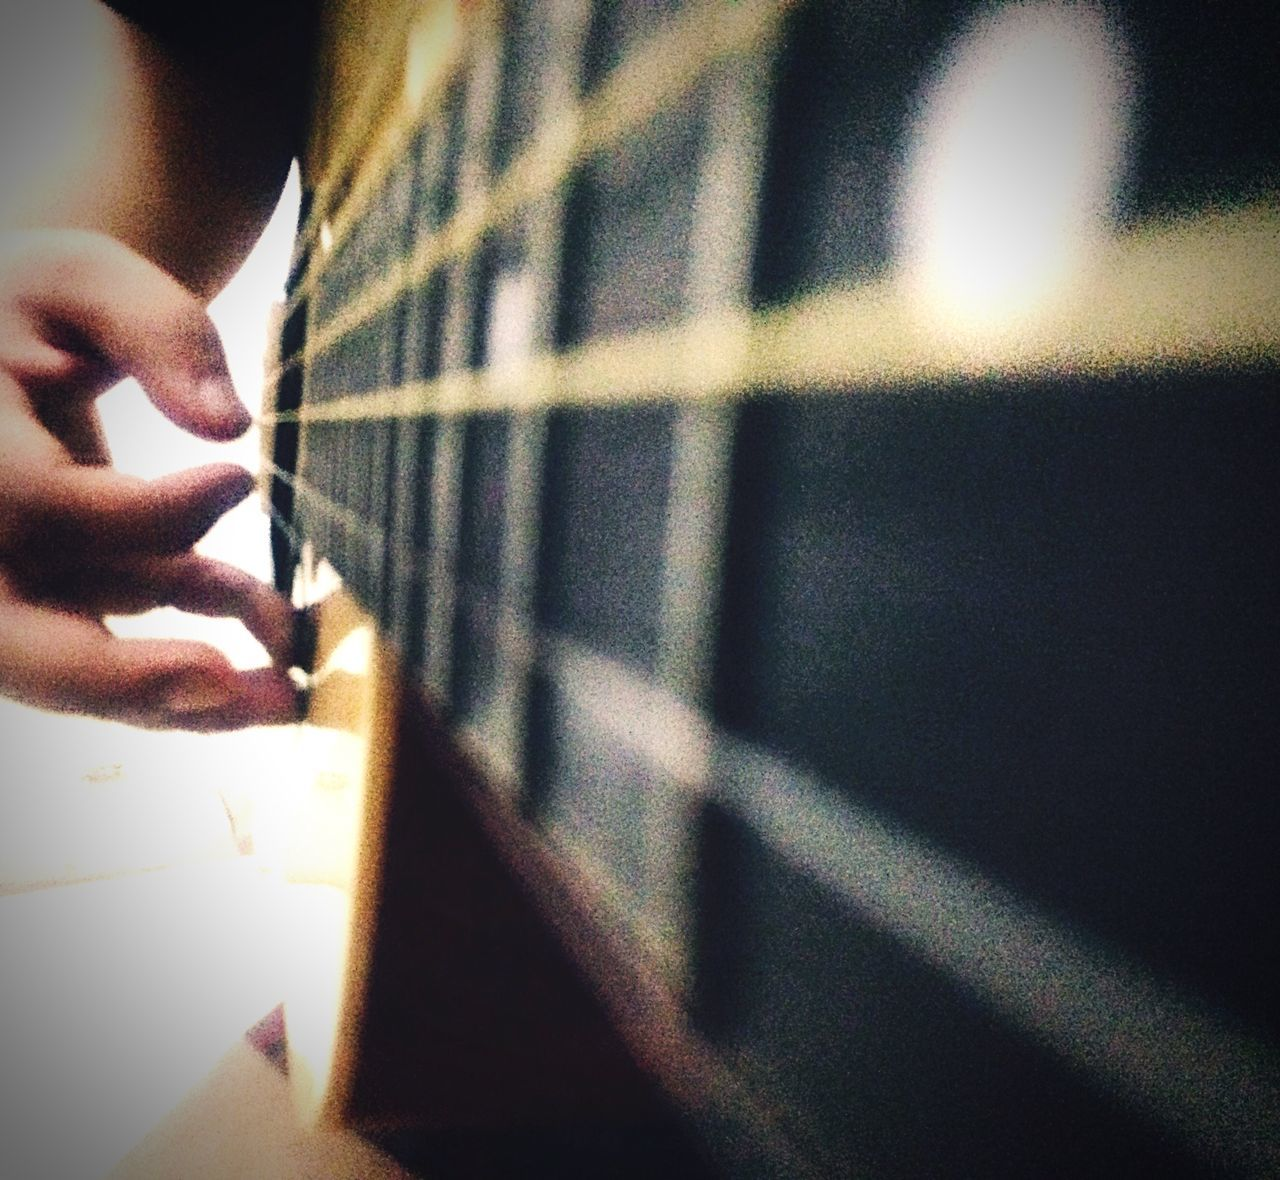 human hand, indoors, music, human body part, real people, one person, human finger, musical instrument, playing, arts culture and entertainment, close-up, musical instrument string, guitar, fretboard, day, people